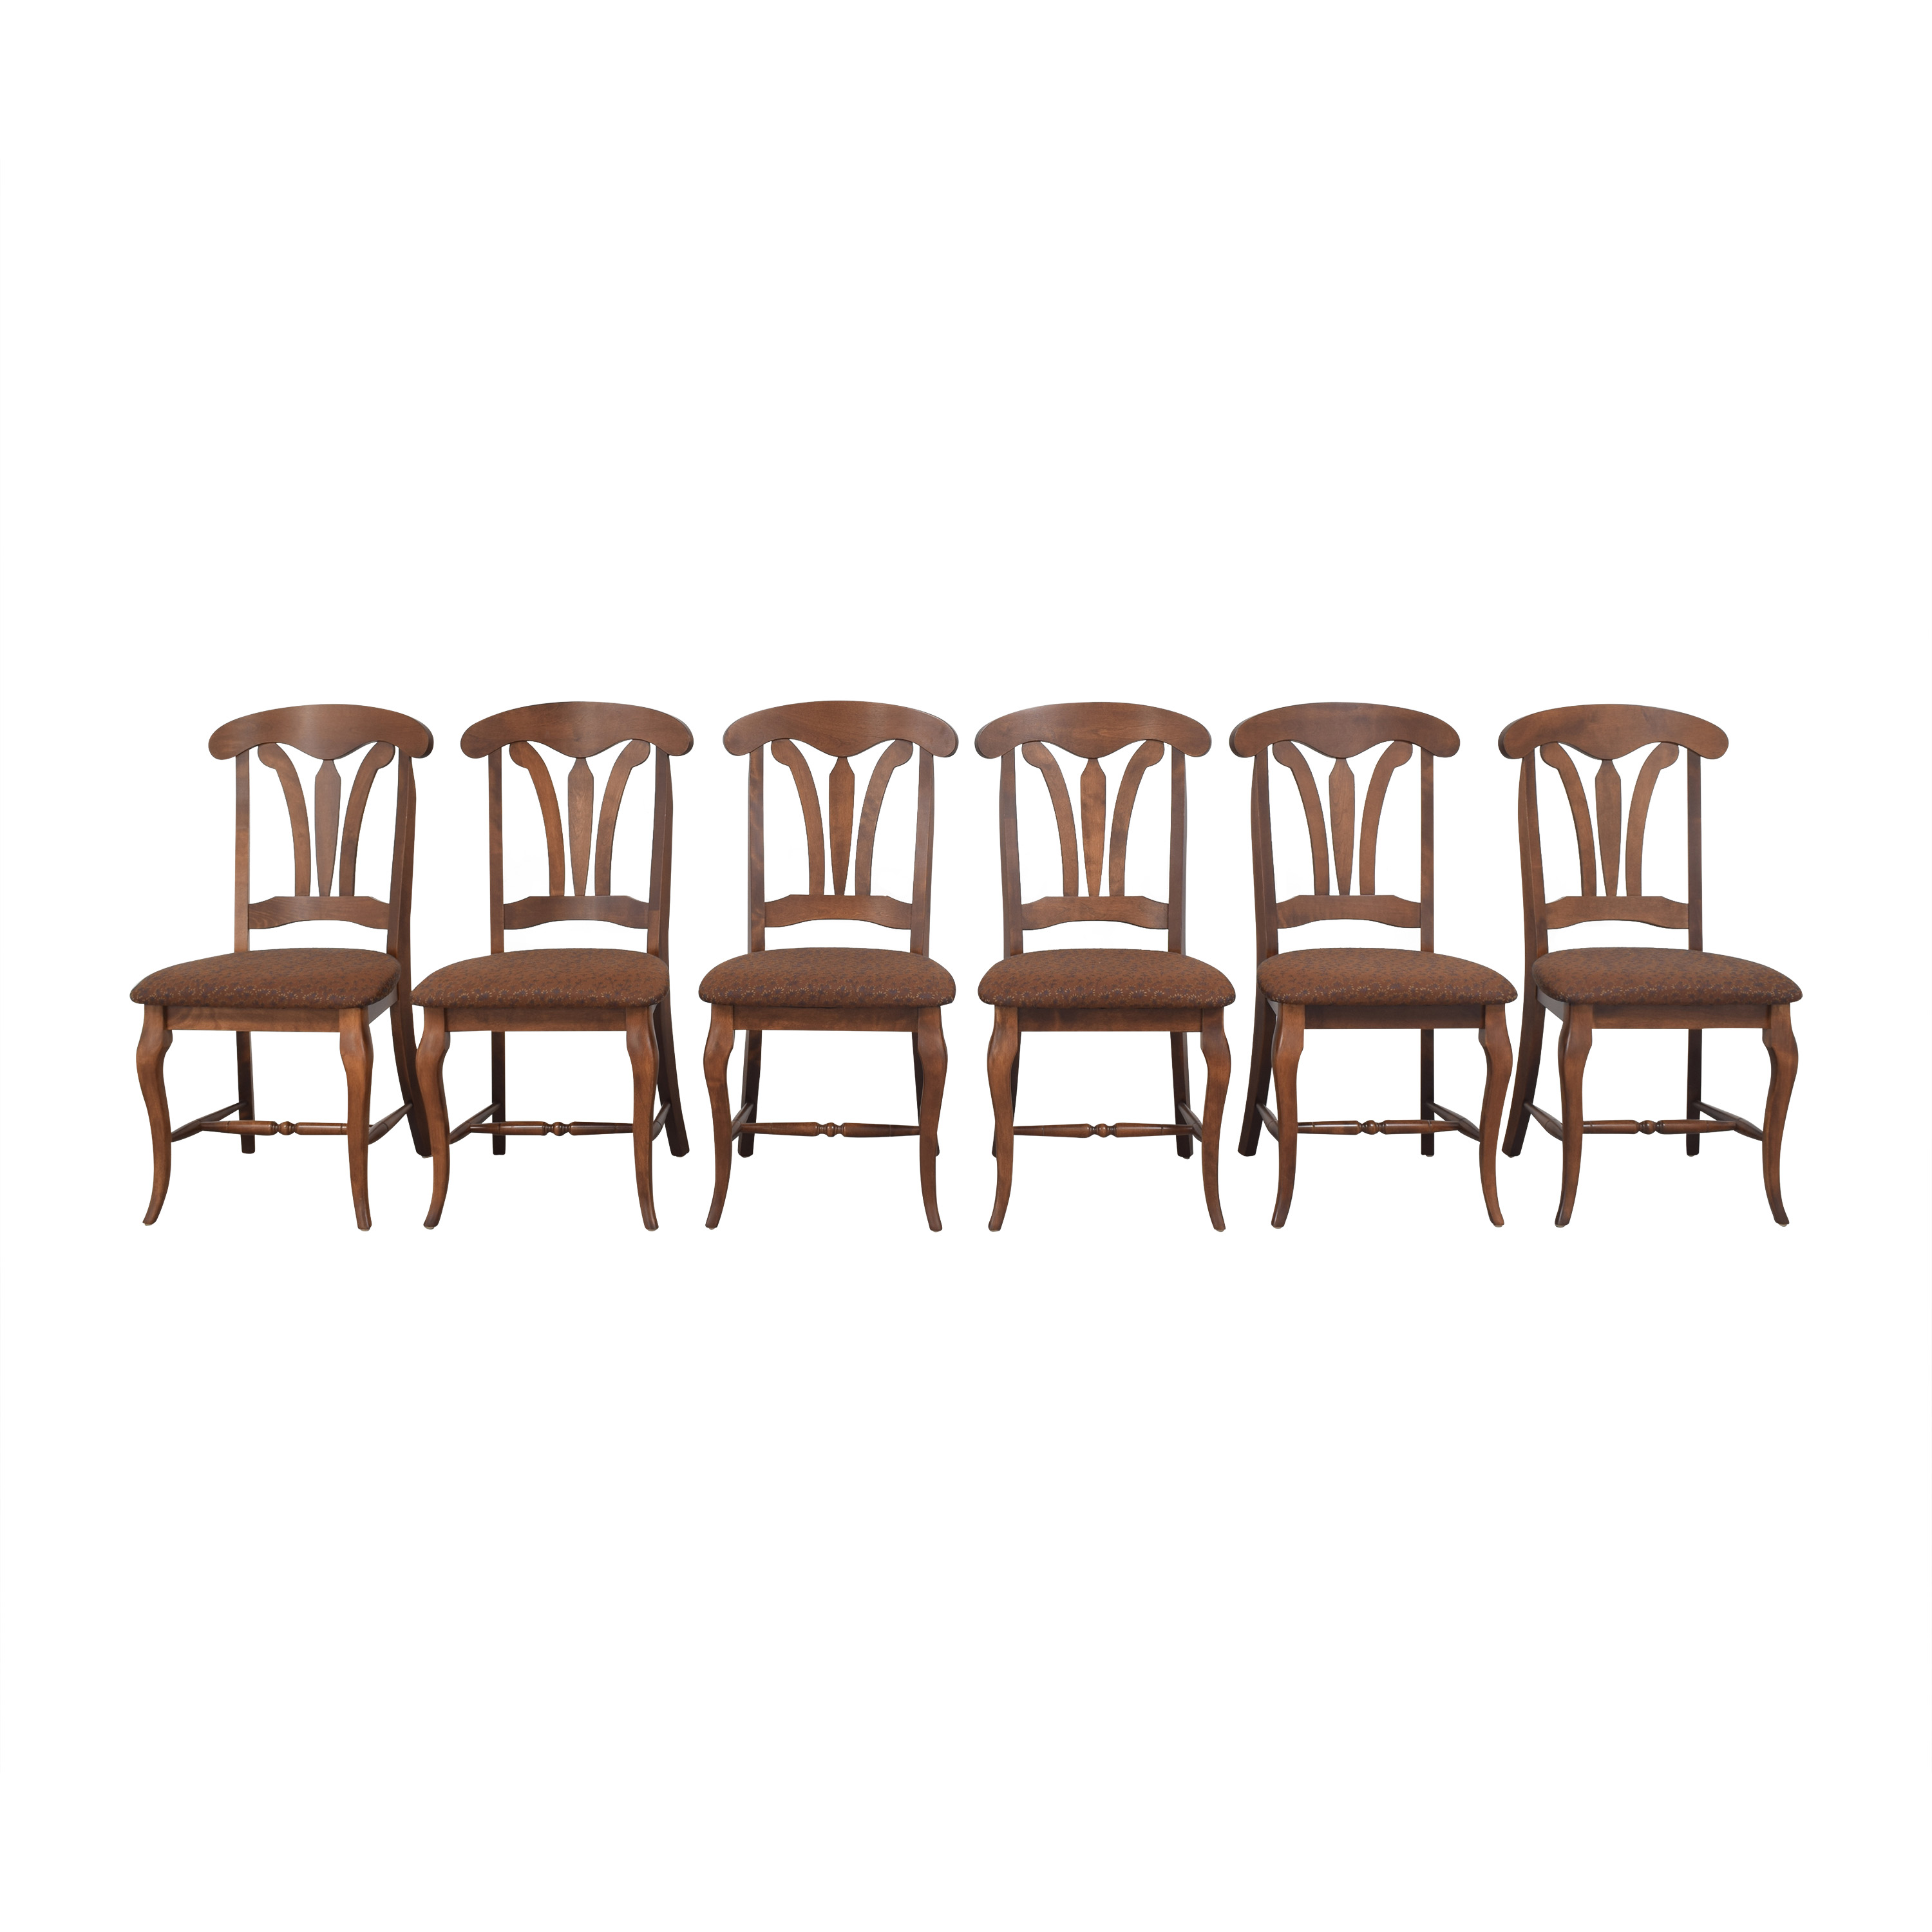 Canadel Canadel Upholstered Dining Chairs ma